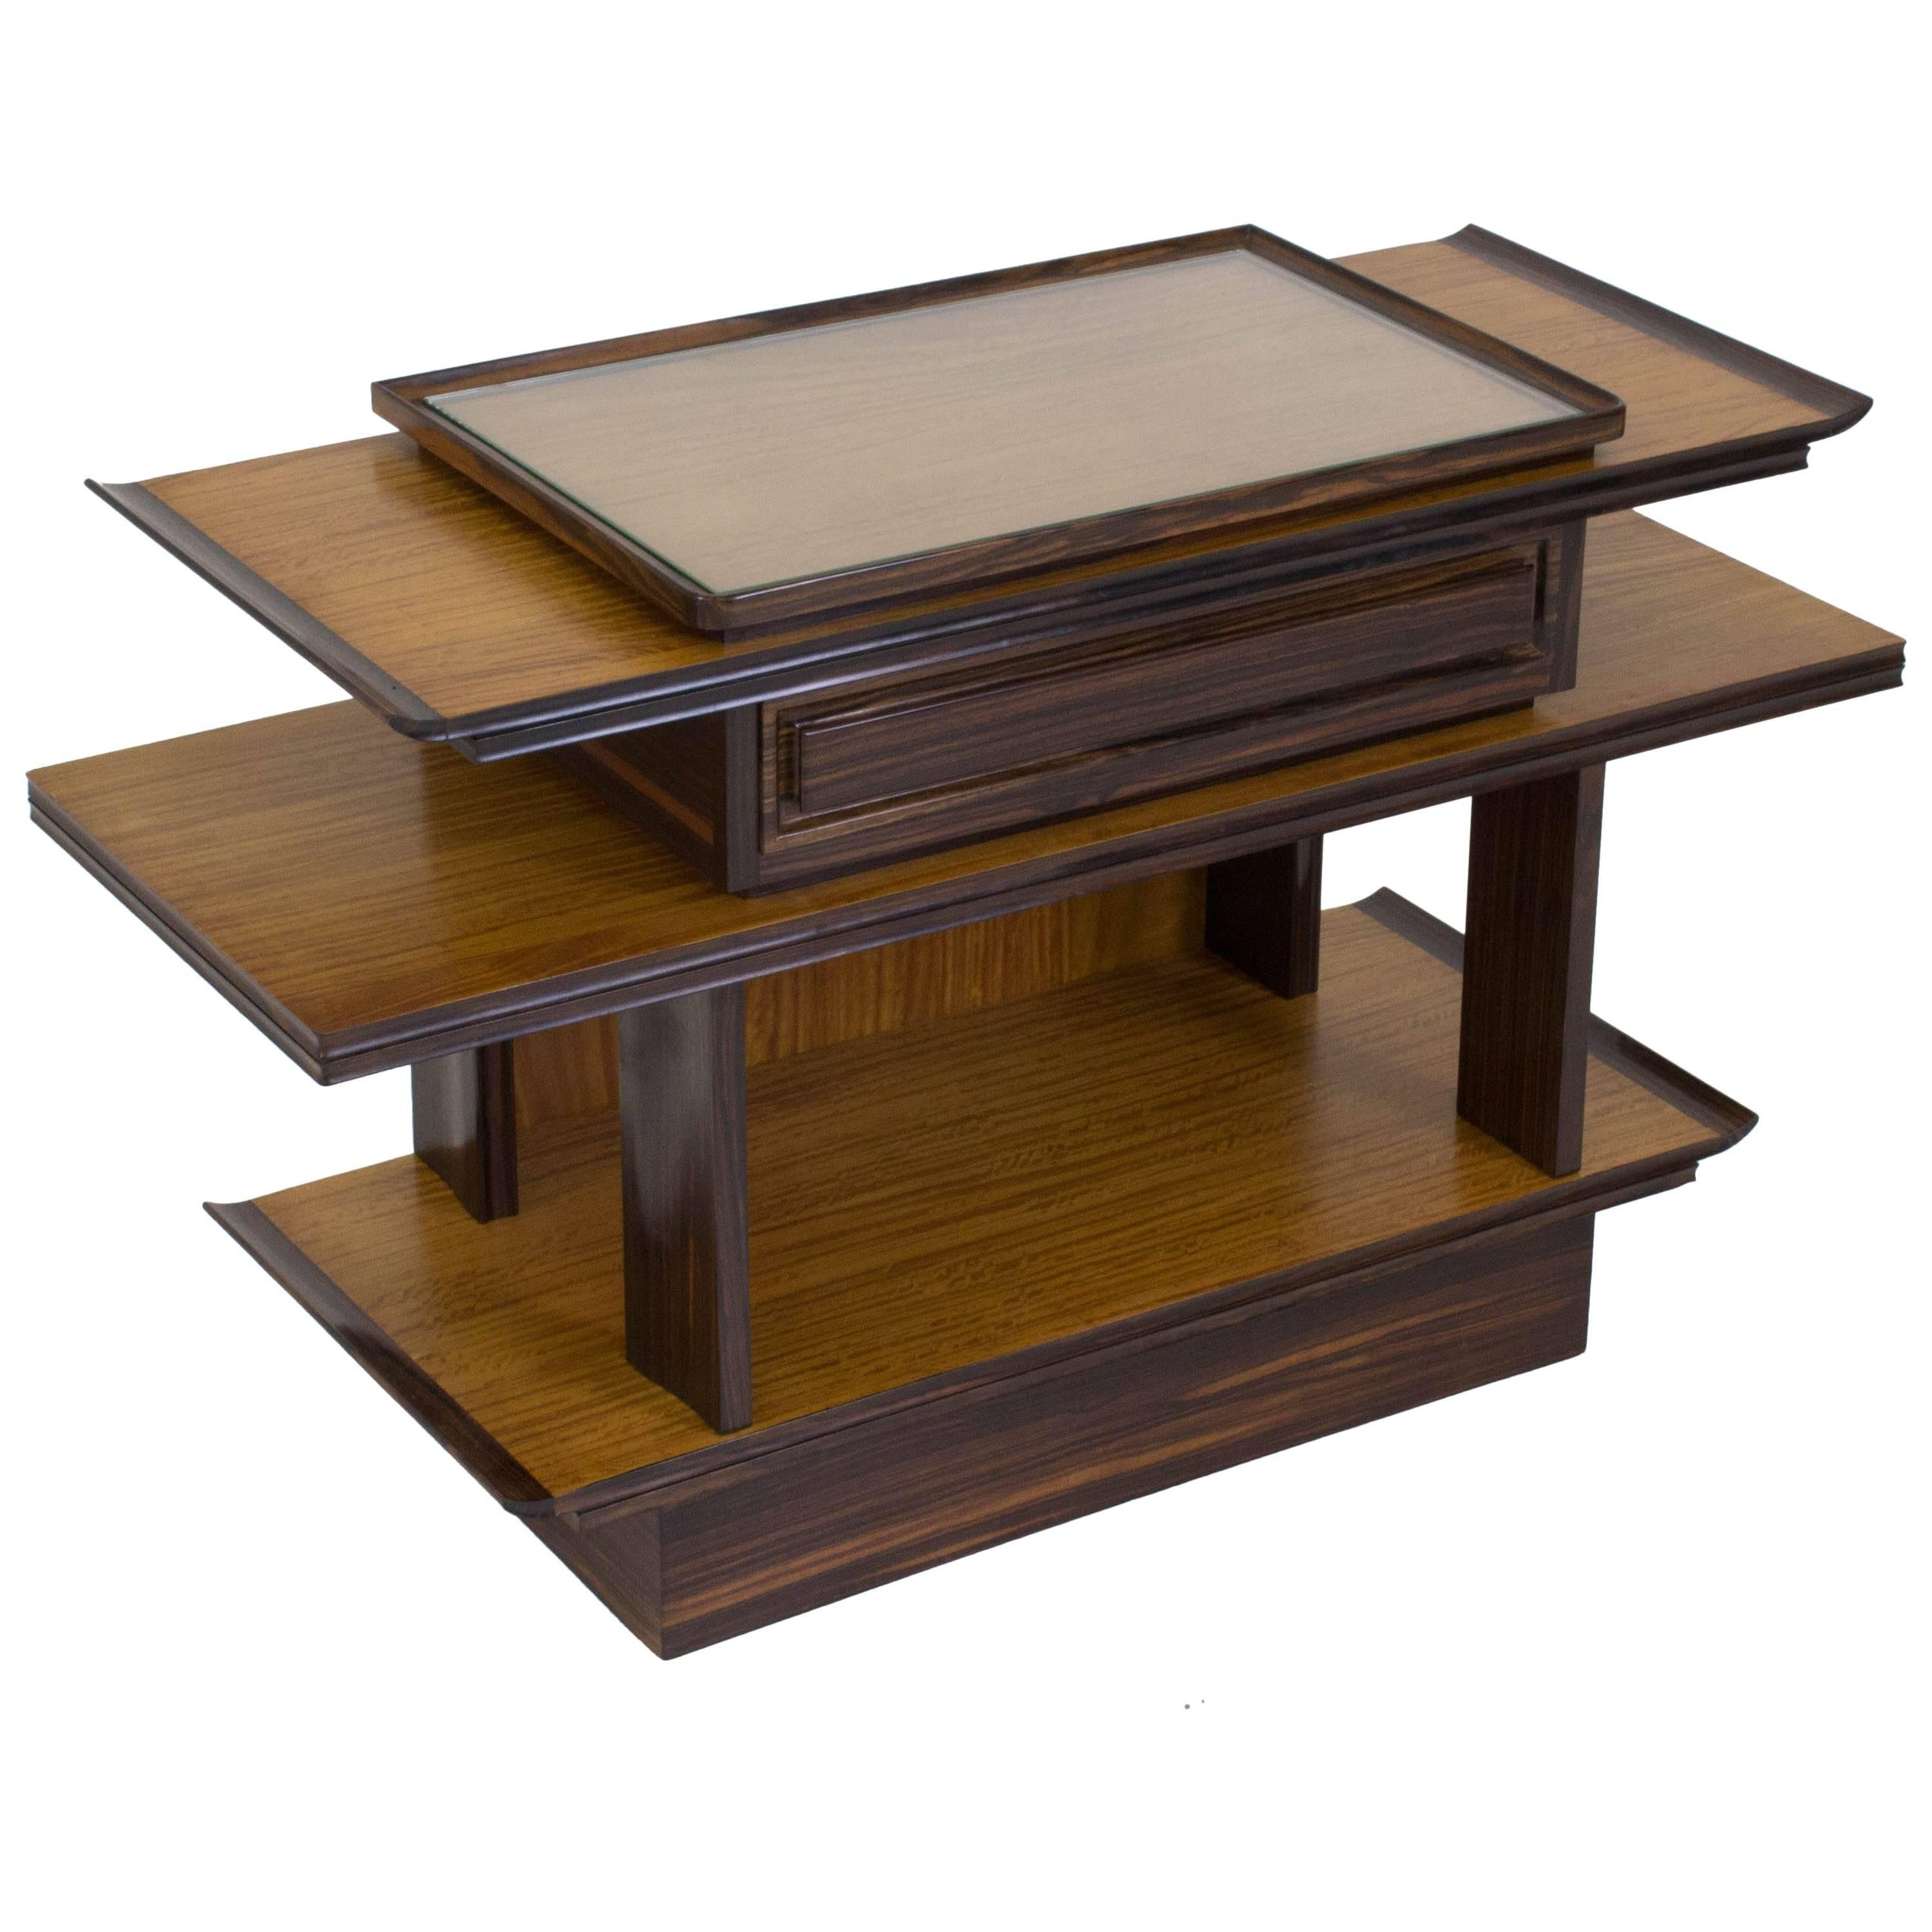 sycamore maple art deco console table by for gebrreens 1930s